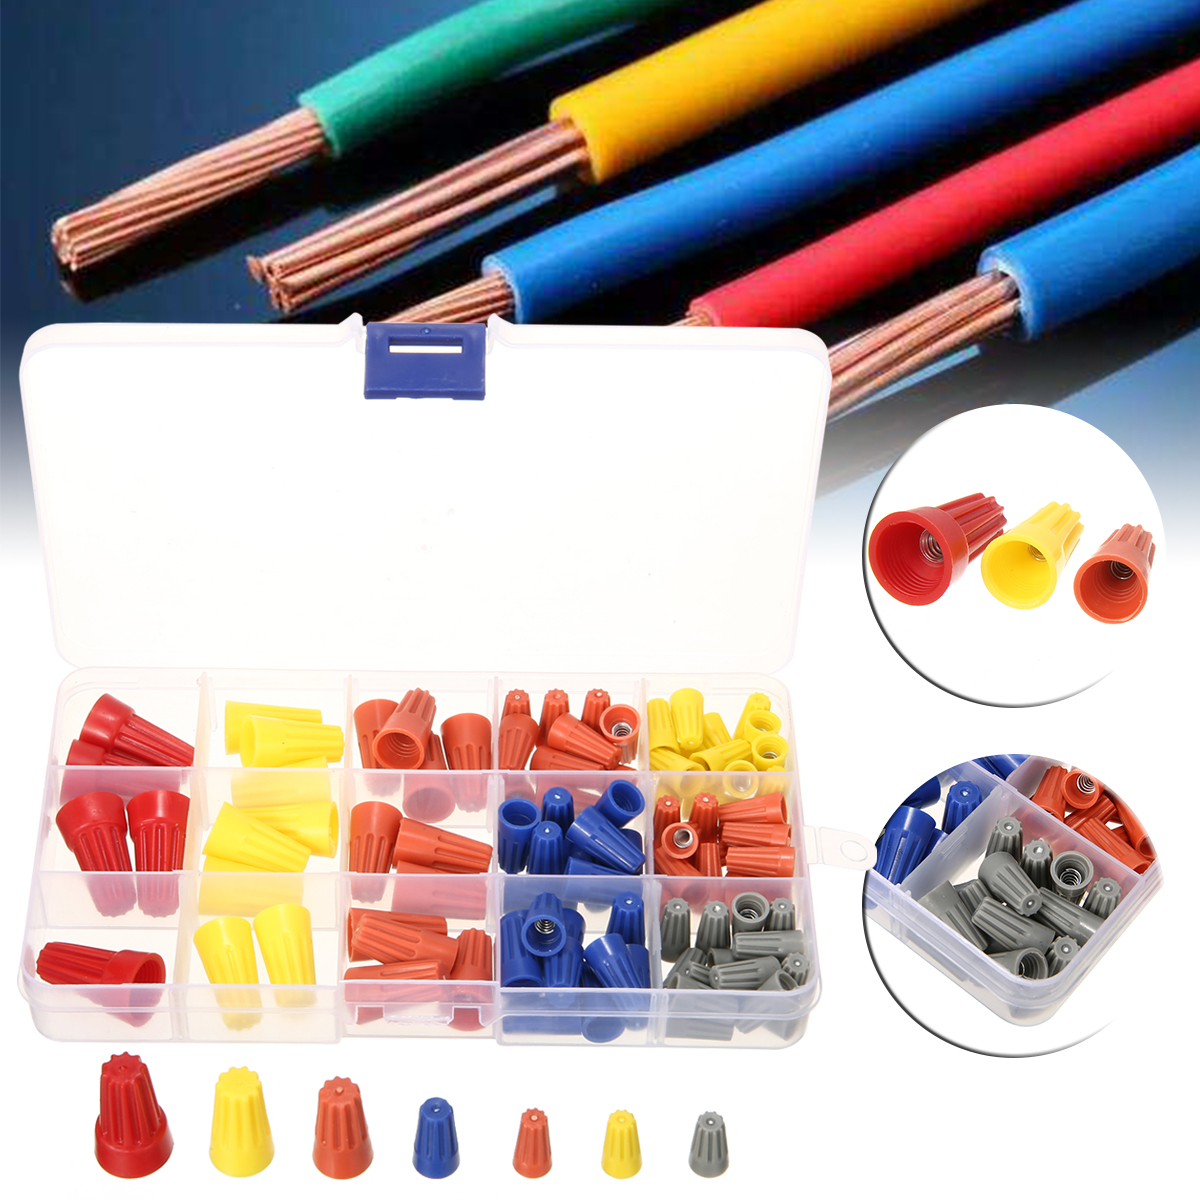 102pcs P1 P2 P3 P4 P6 Wire Cable Twist Connector Electrical Nut Spring Cap Insulation Thread Terminals Assortment Set